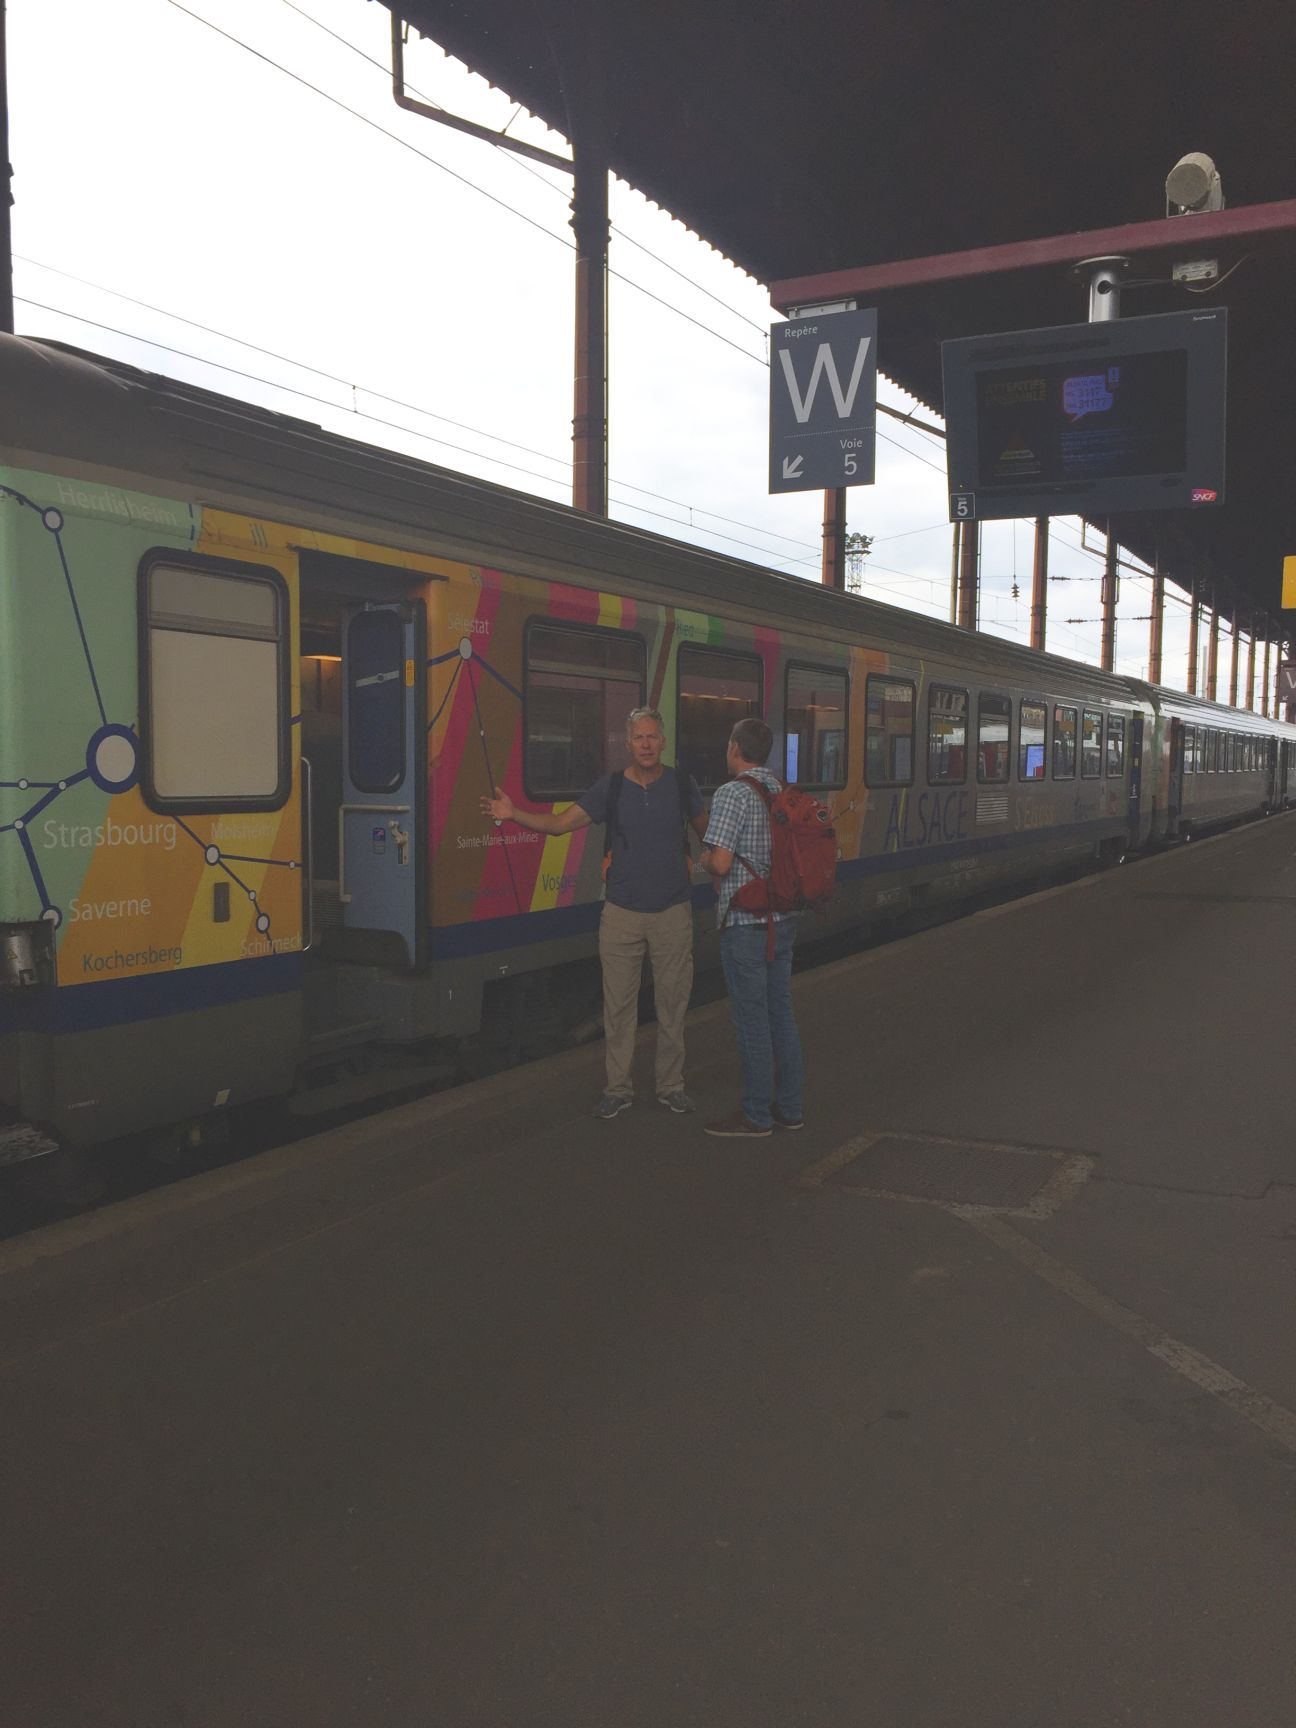 Stranded in Strasbourg...right there on the side of the train is the answer!